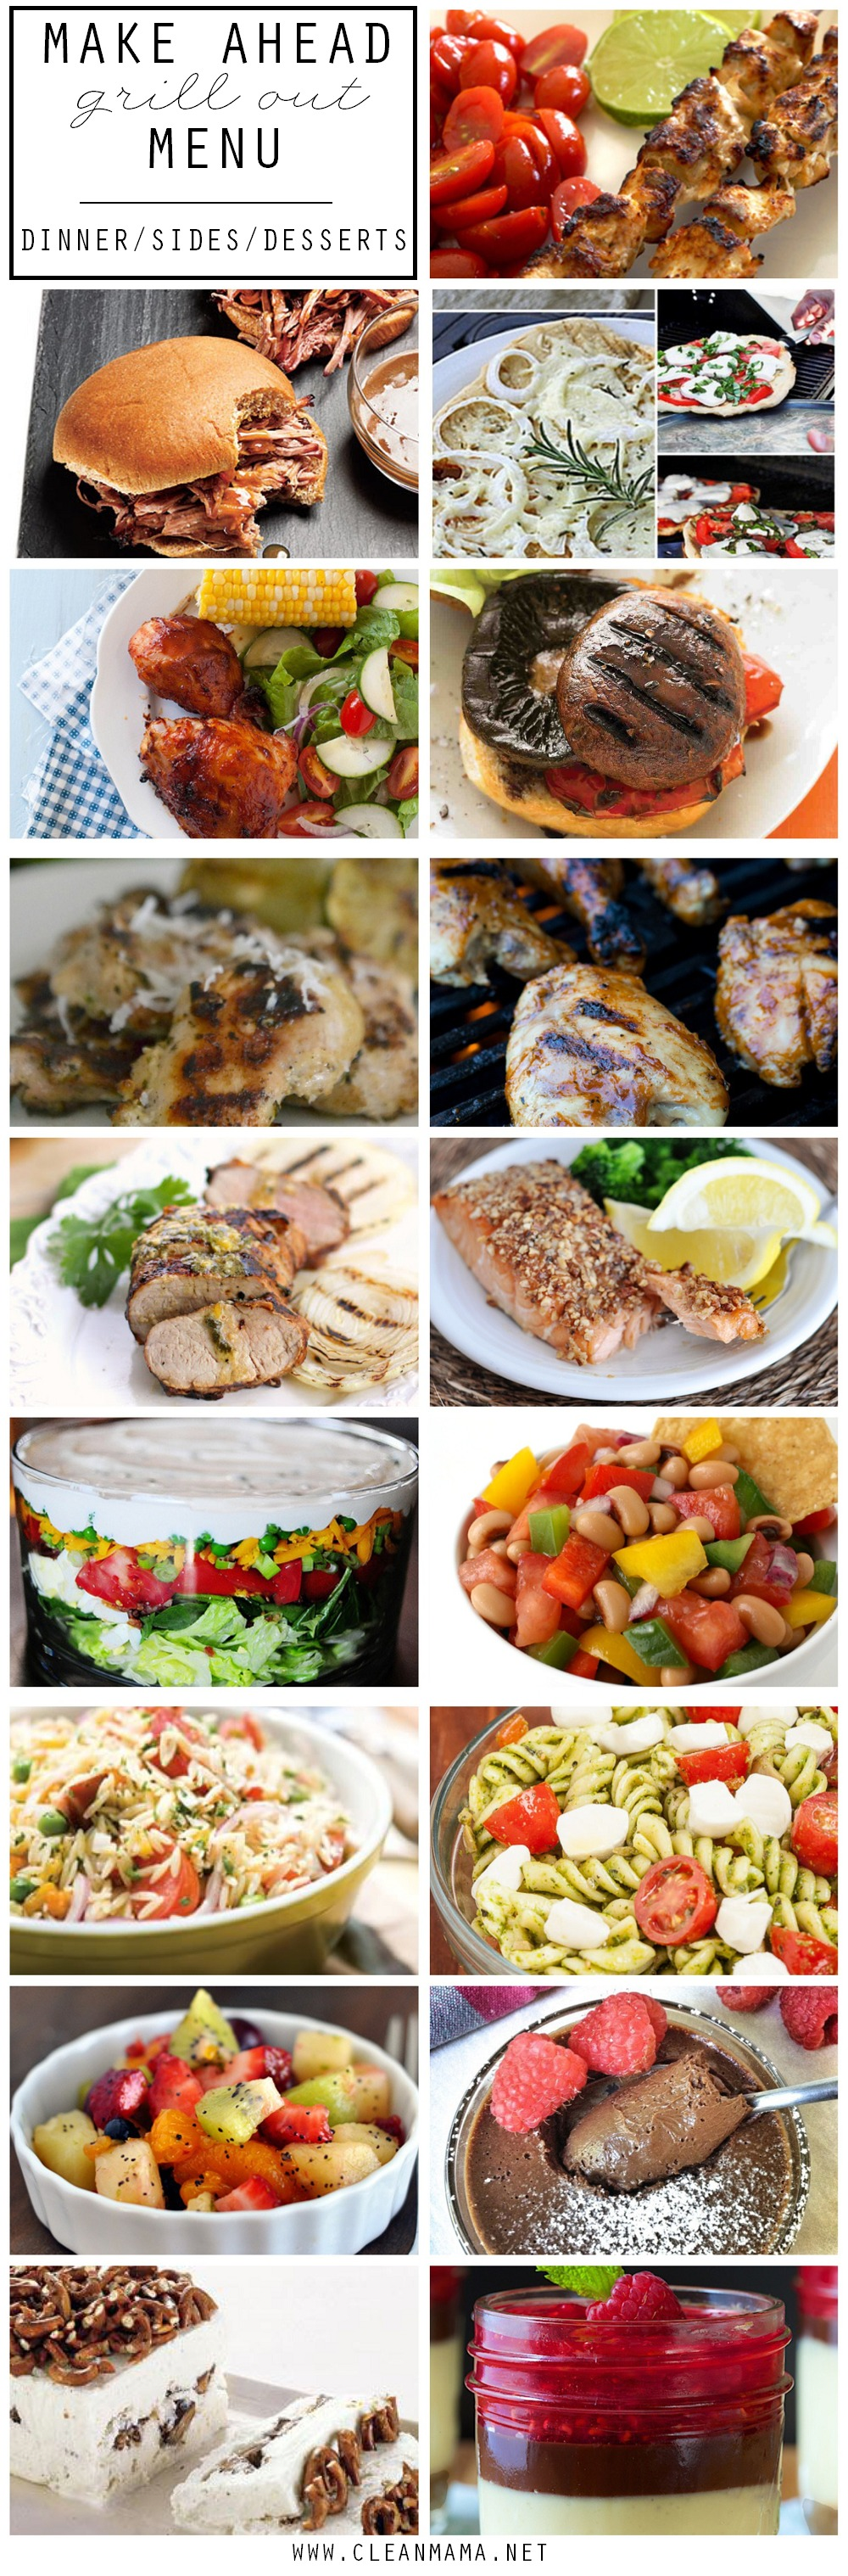 Make Ahead Grilling and Get Together Menu via Clean Mama